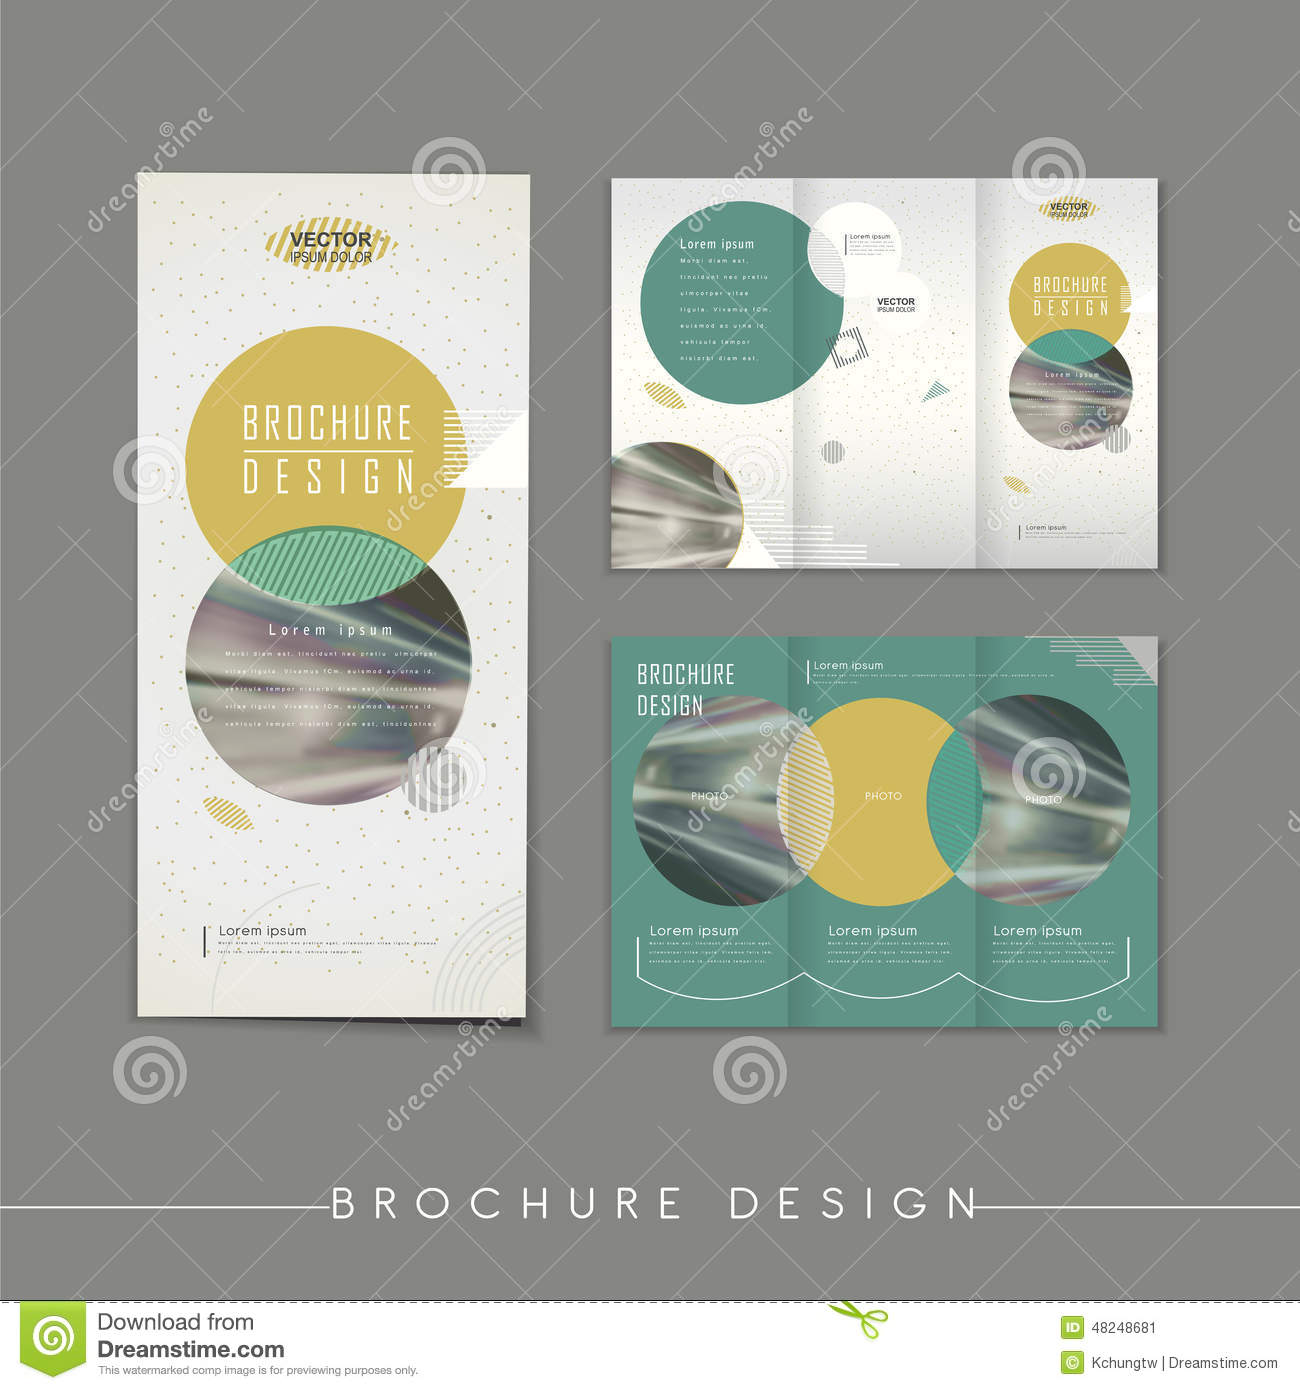 Modern abstract tri fold brochure template design stock for Modern brochure design templates